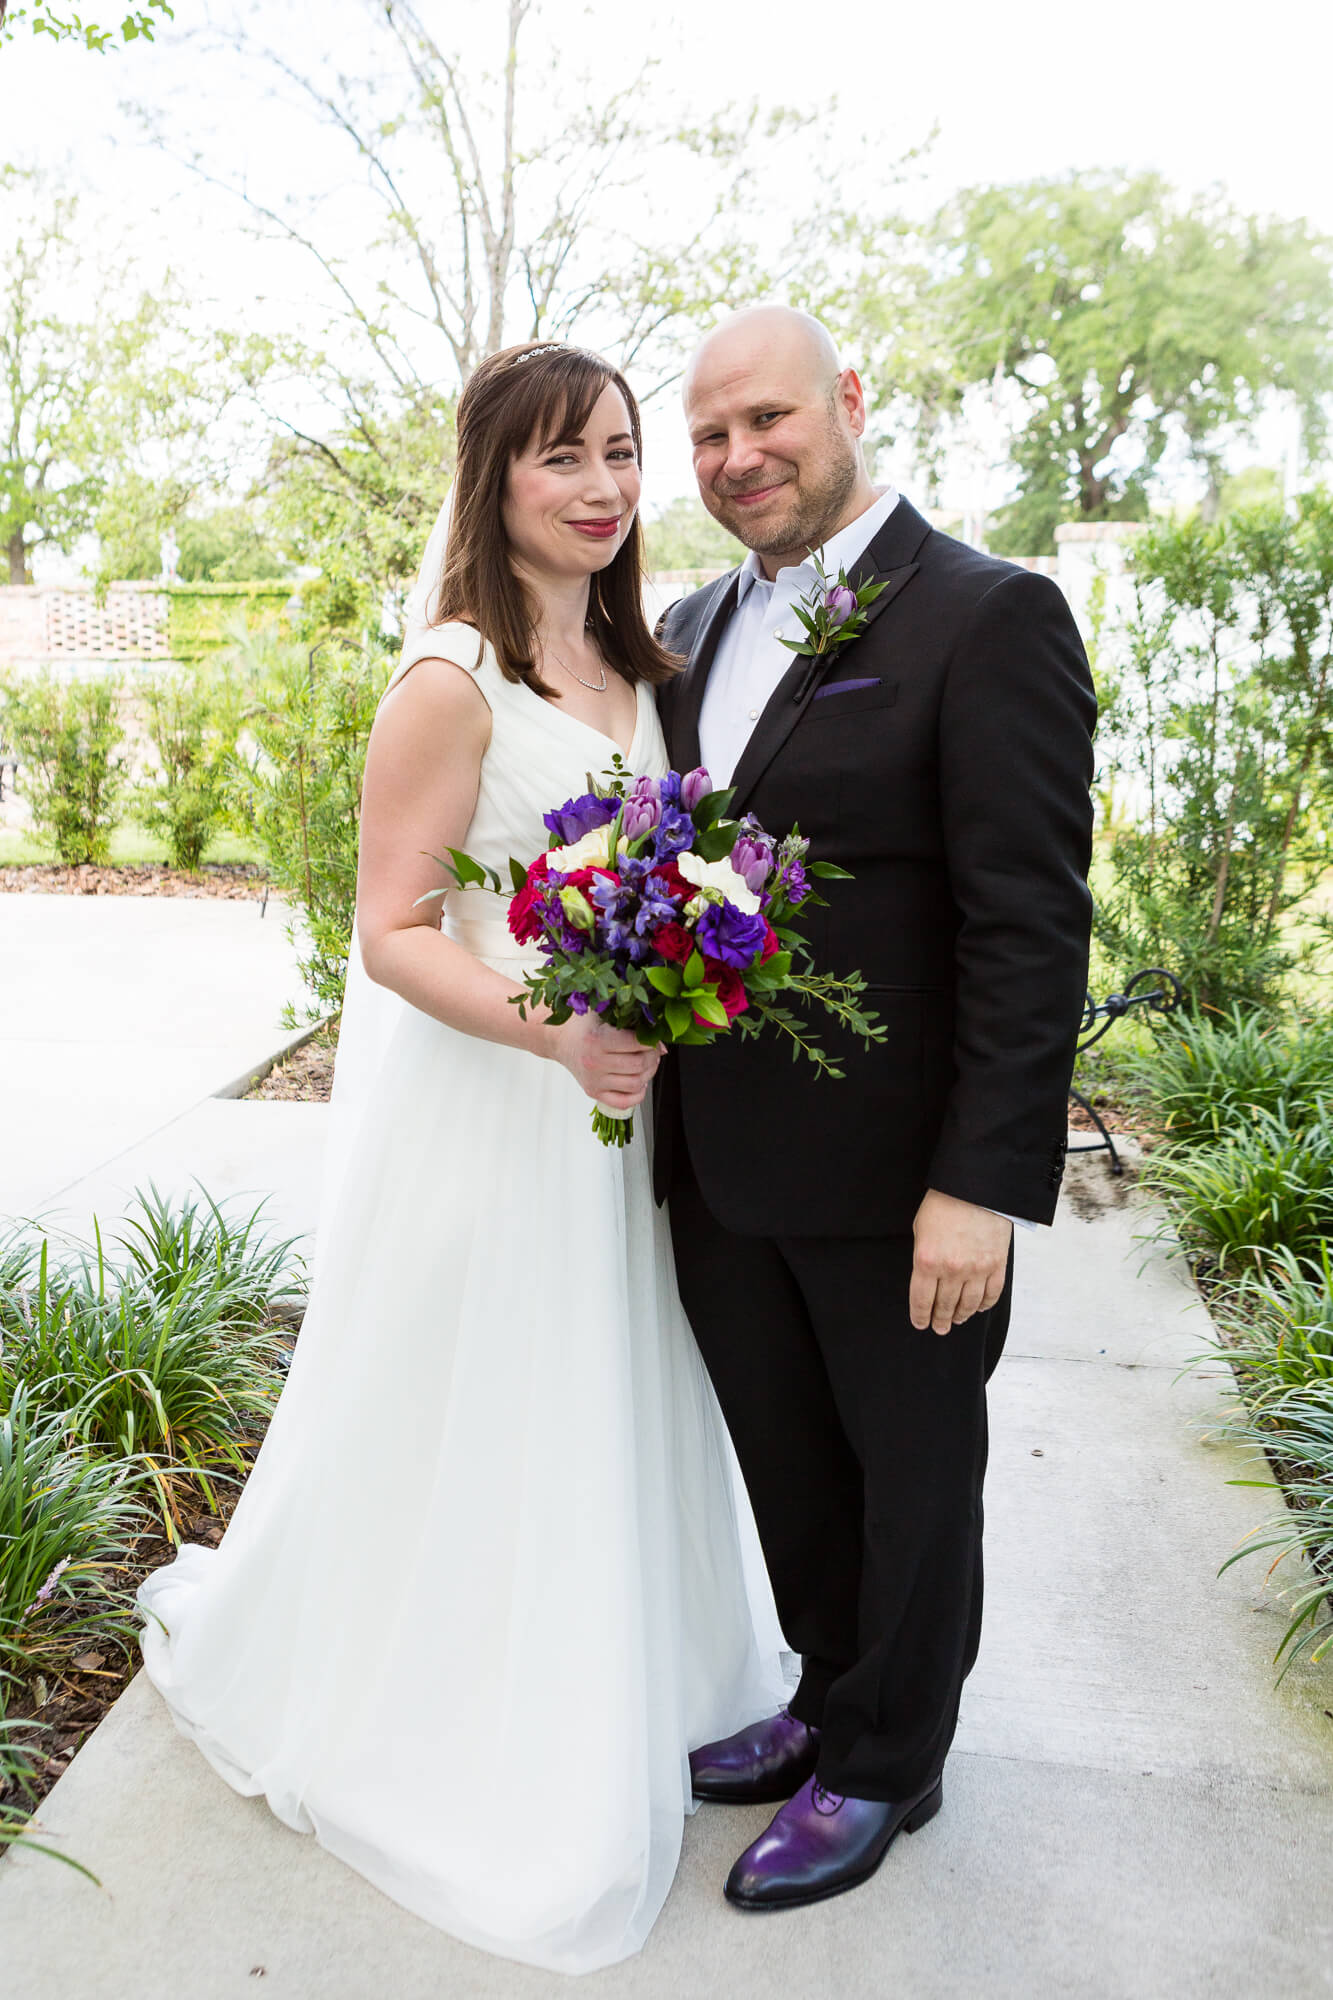 wedding photos from Amanda and Ryan's surprise wedding at Winter Park Florida's Chapel & Cellar wedding venue